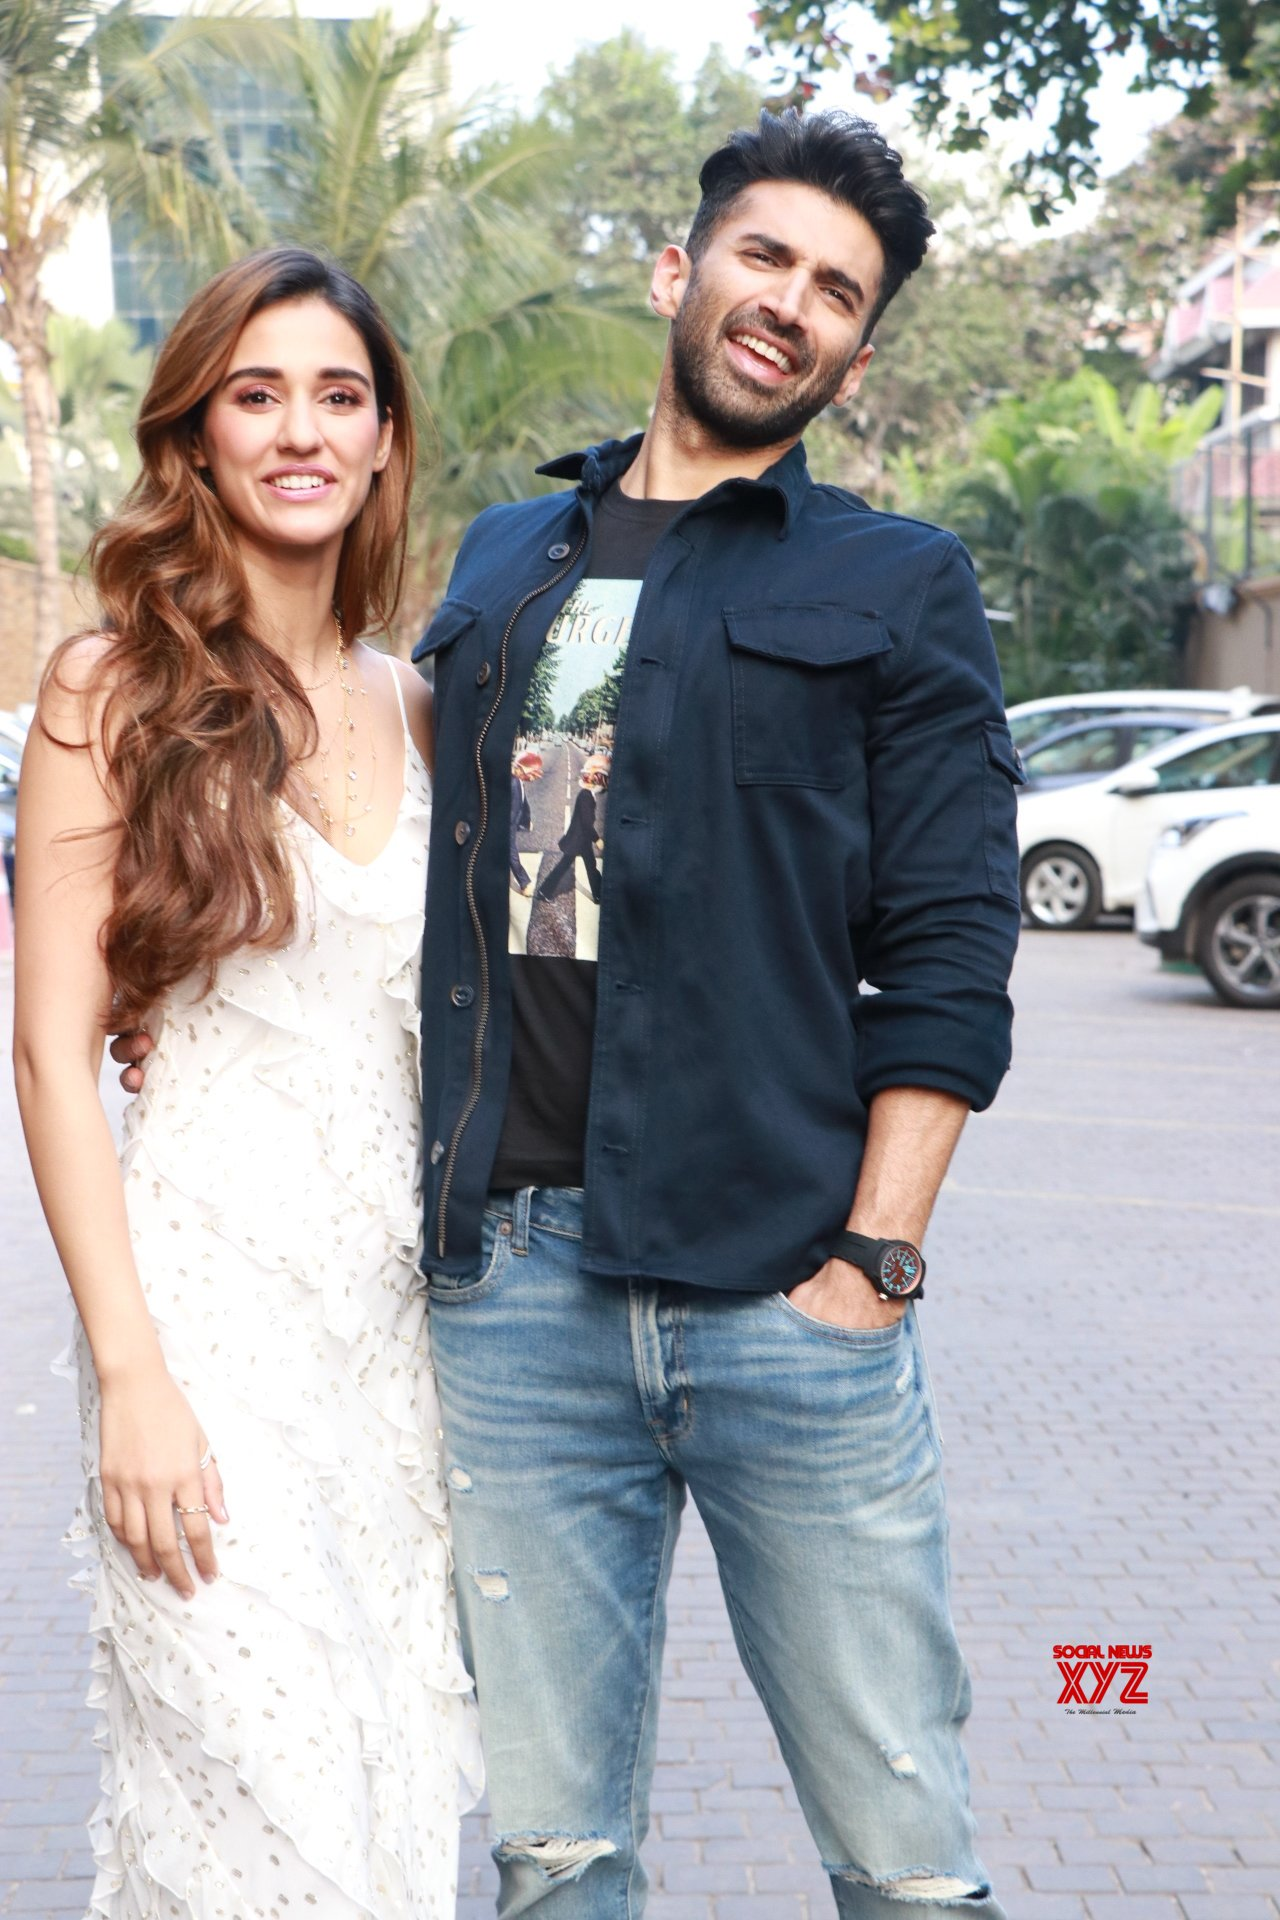 Malang Star Cast Aditya Roy Kapoor And Disha Patani Spotted Promoting Their Film Malang At Jw Marriott Gallery Social News Xyz